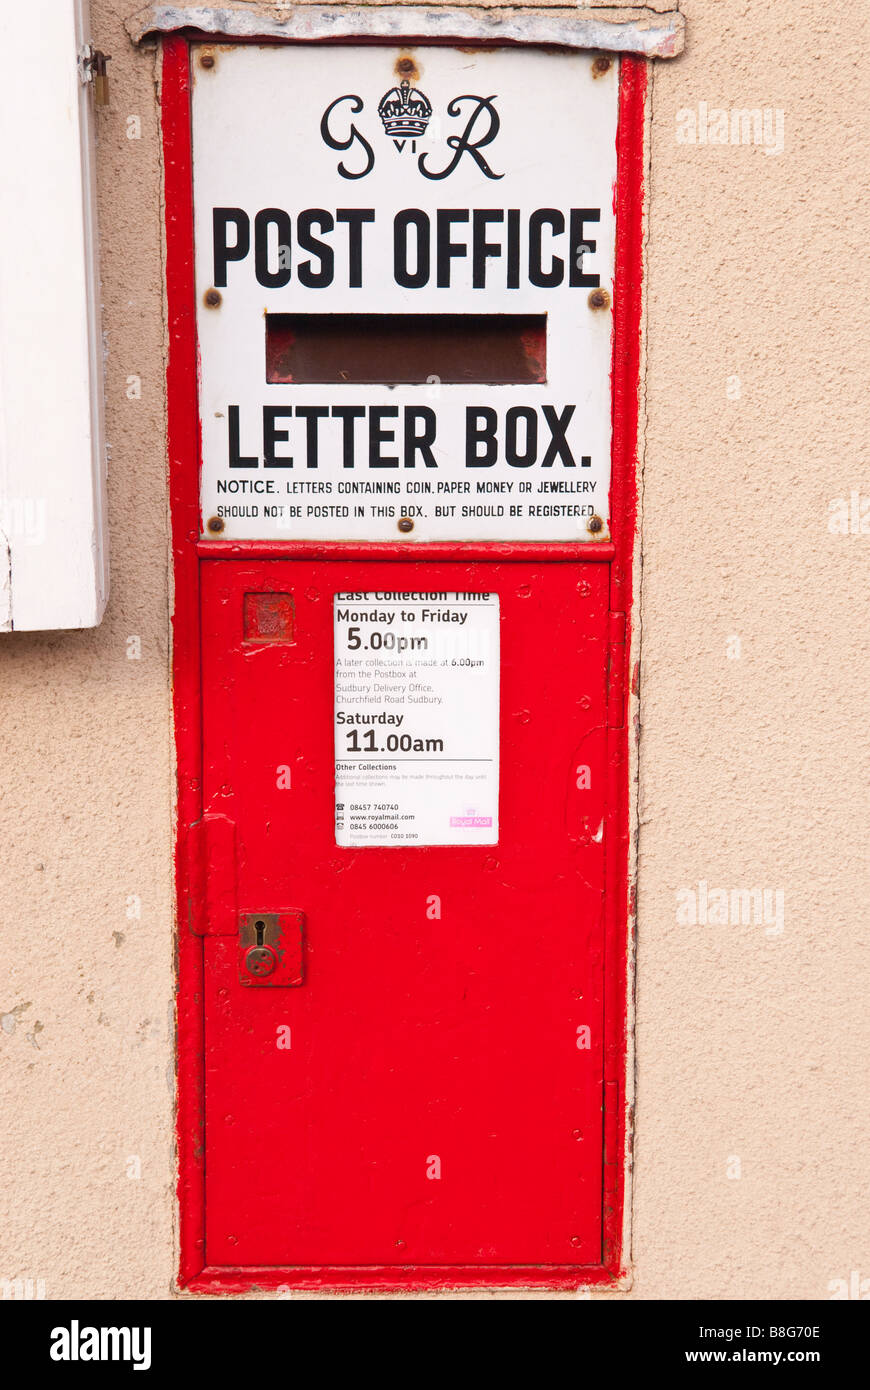 A red royal mail GR post office letter posting box in the uk Stock Photo